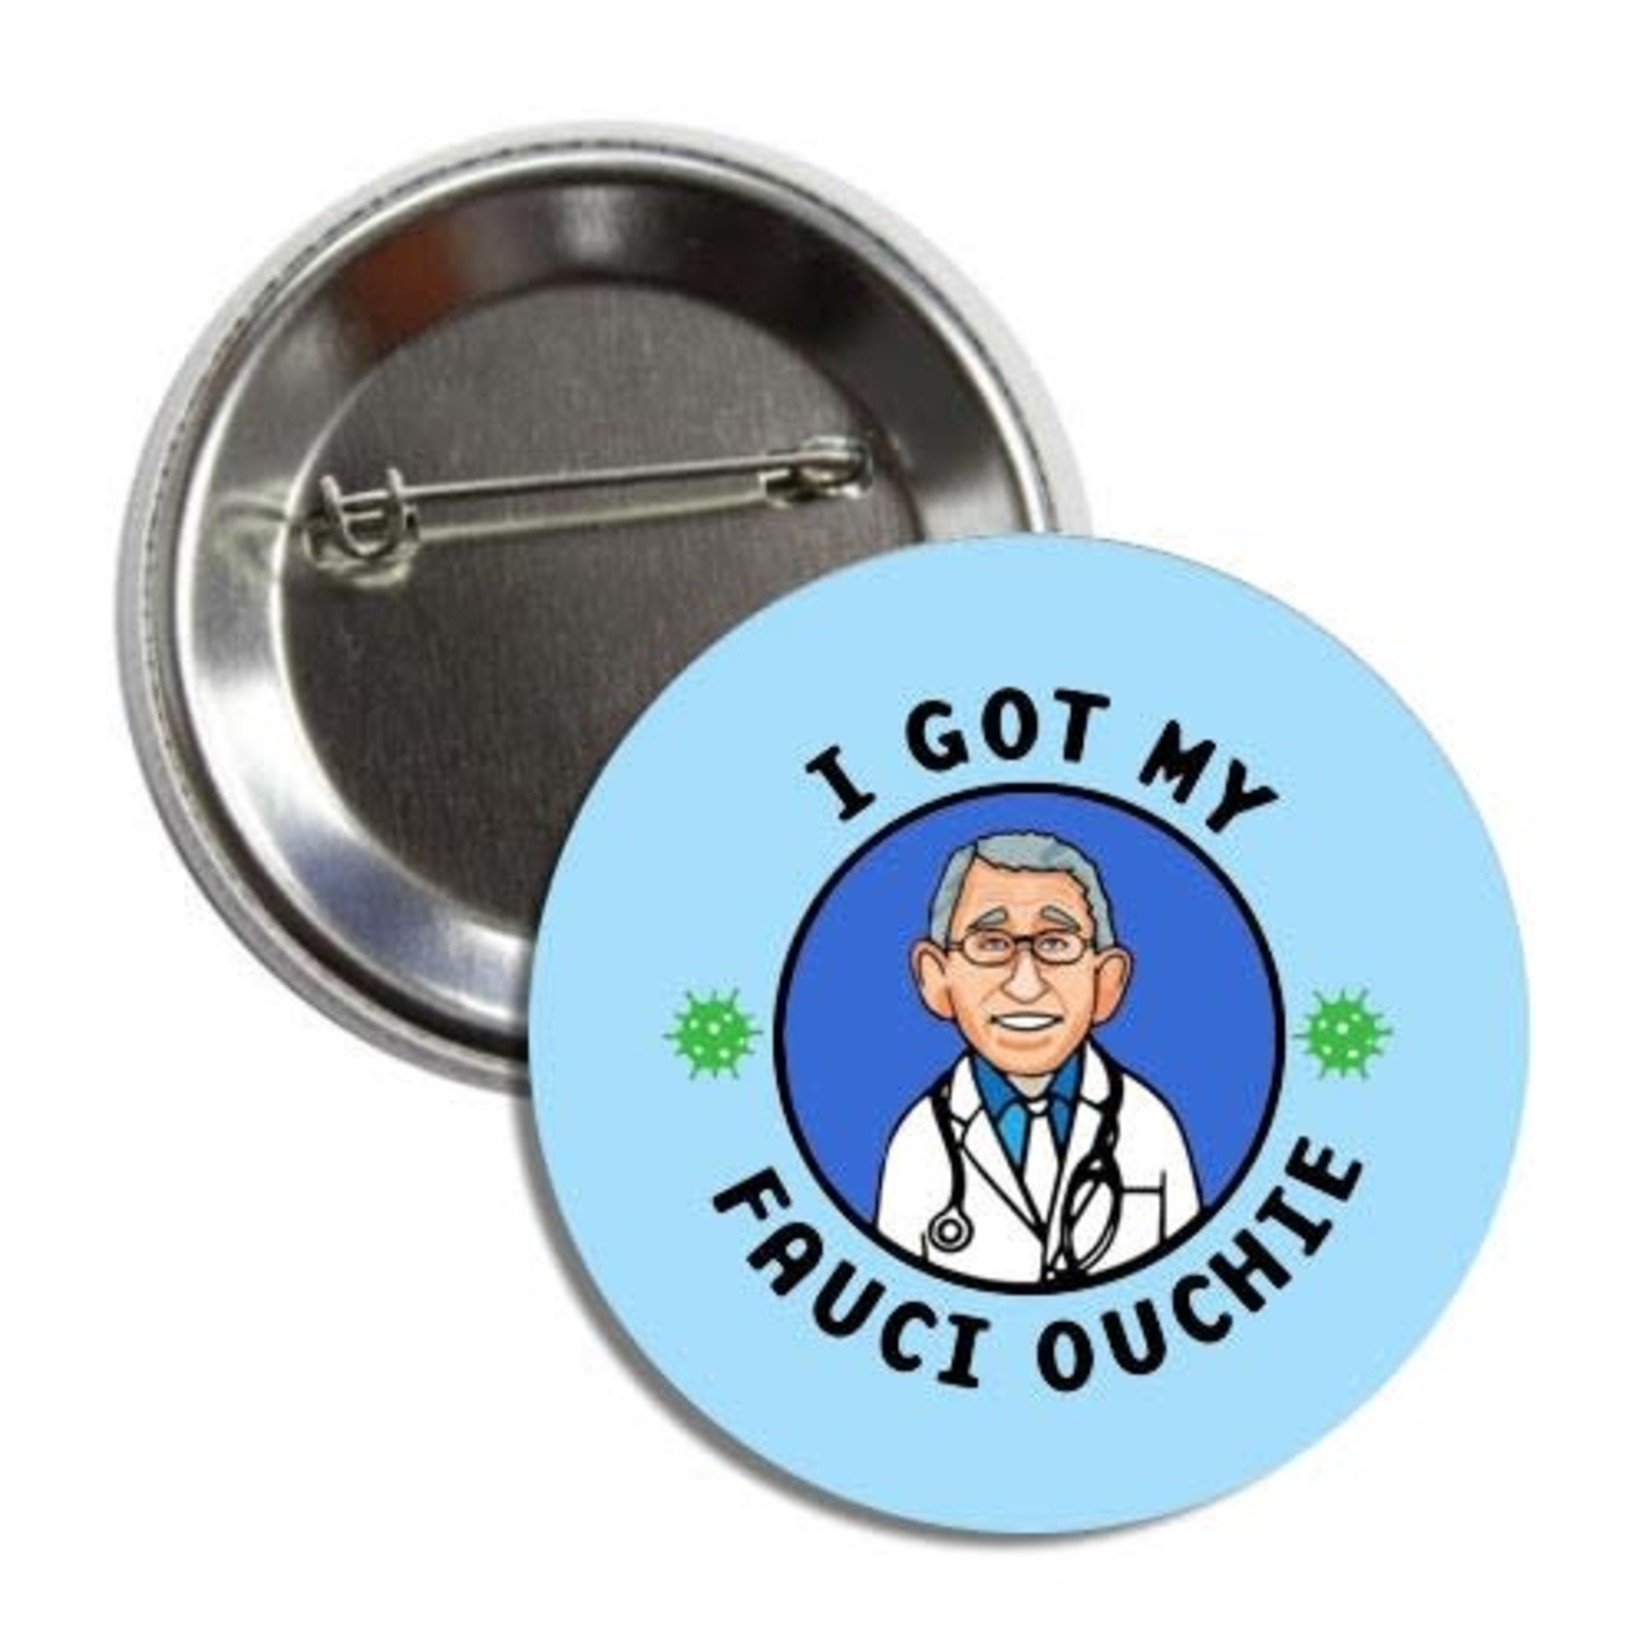 Pins: Fauci Ouchie